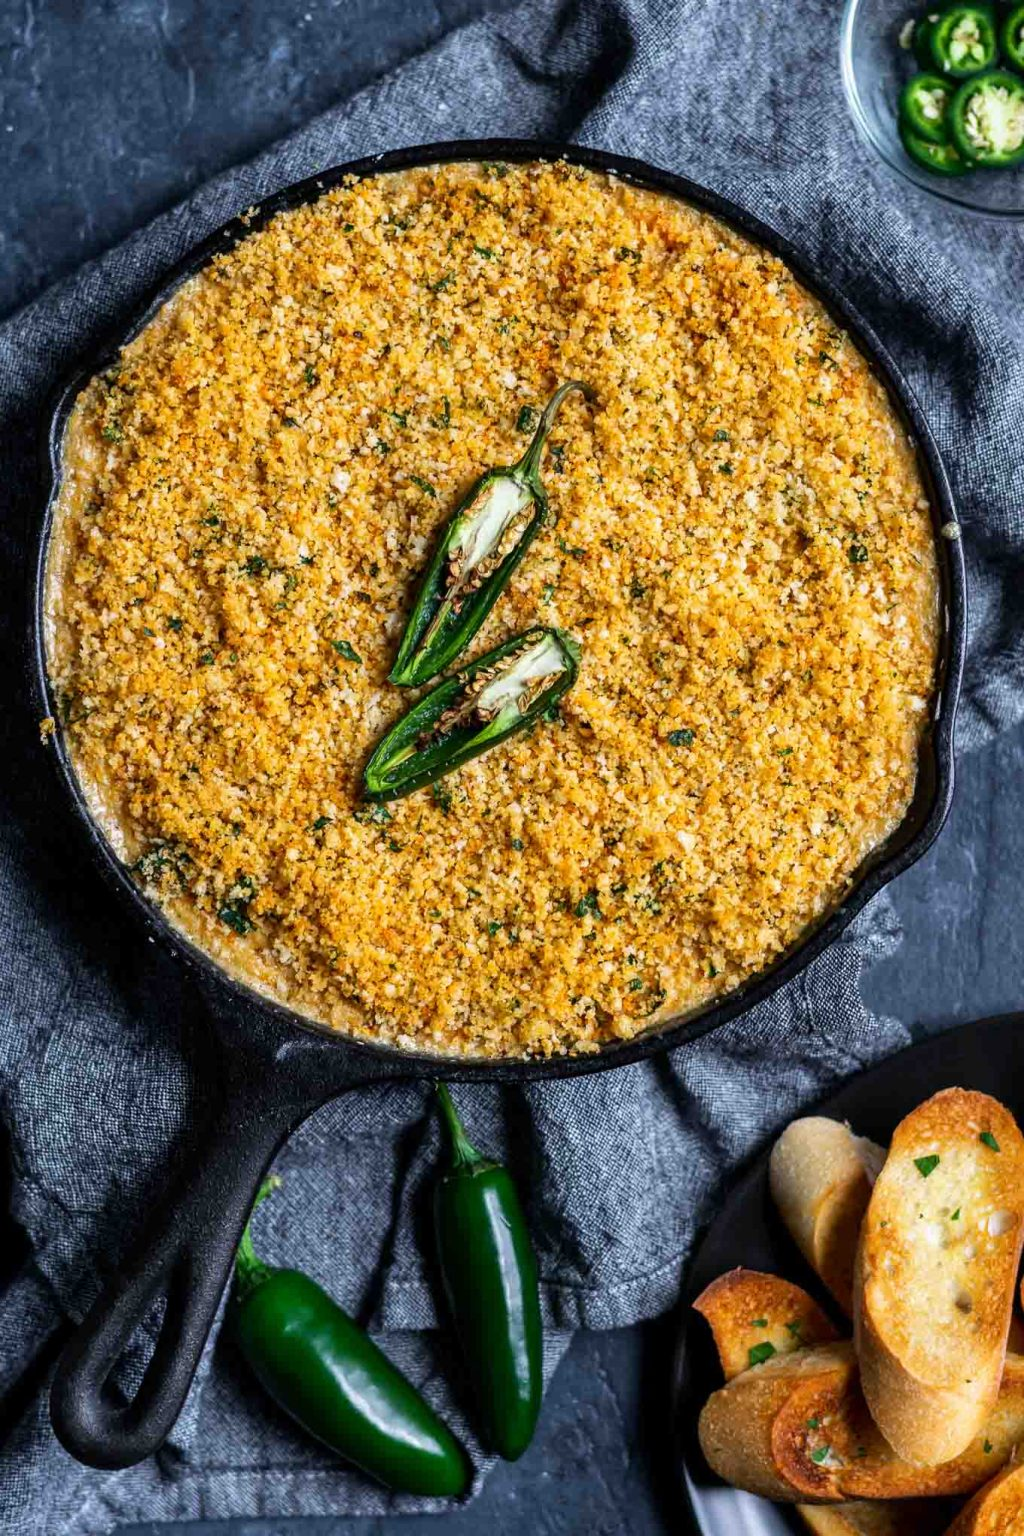 vegan jalapeño popper dip baked in cast iron with a bread crumb topping and served with crostini